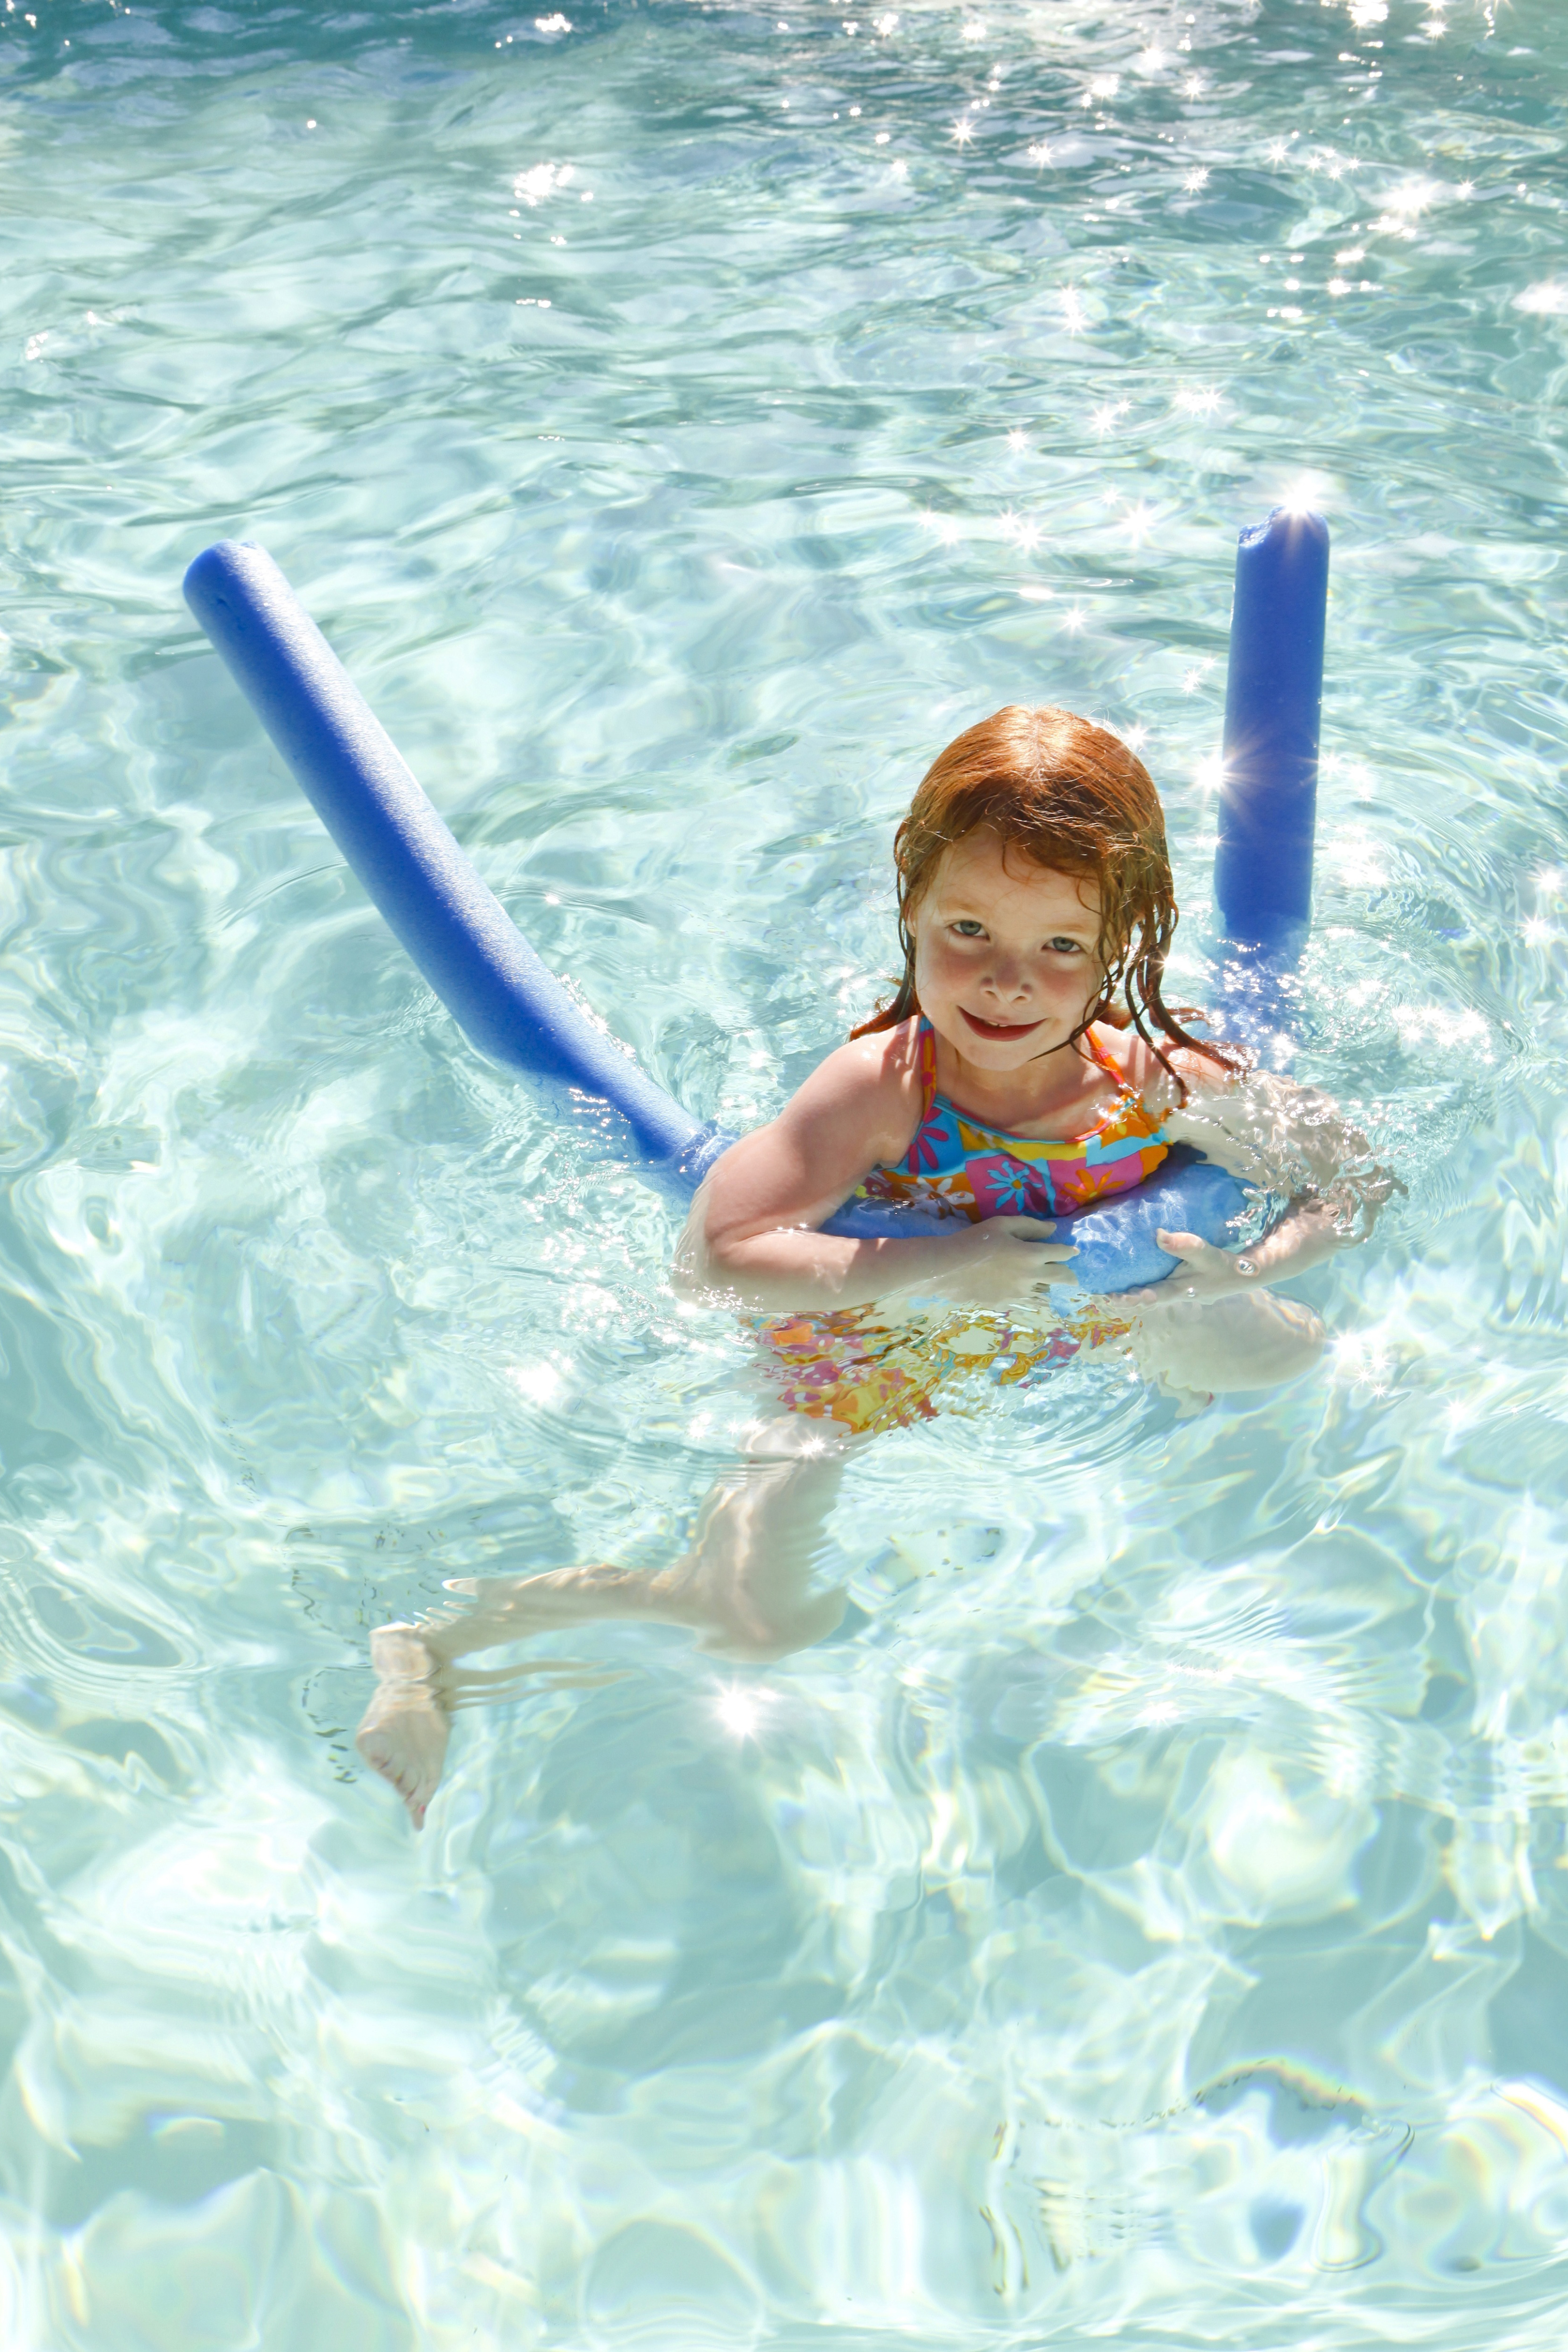 20 Fun Swimming Pool Games for Kids Best Games to Play in the Pool